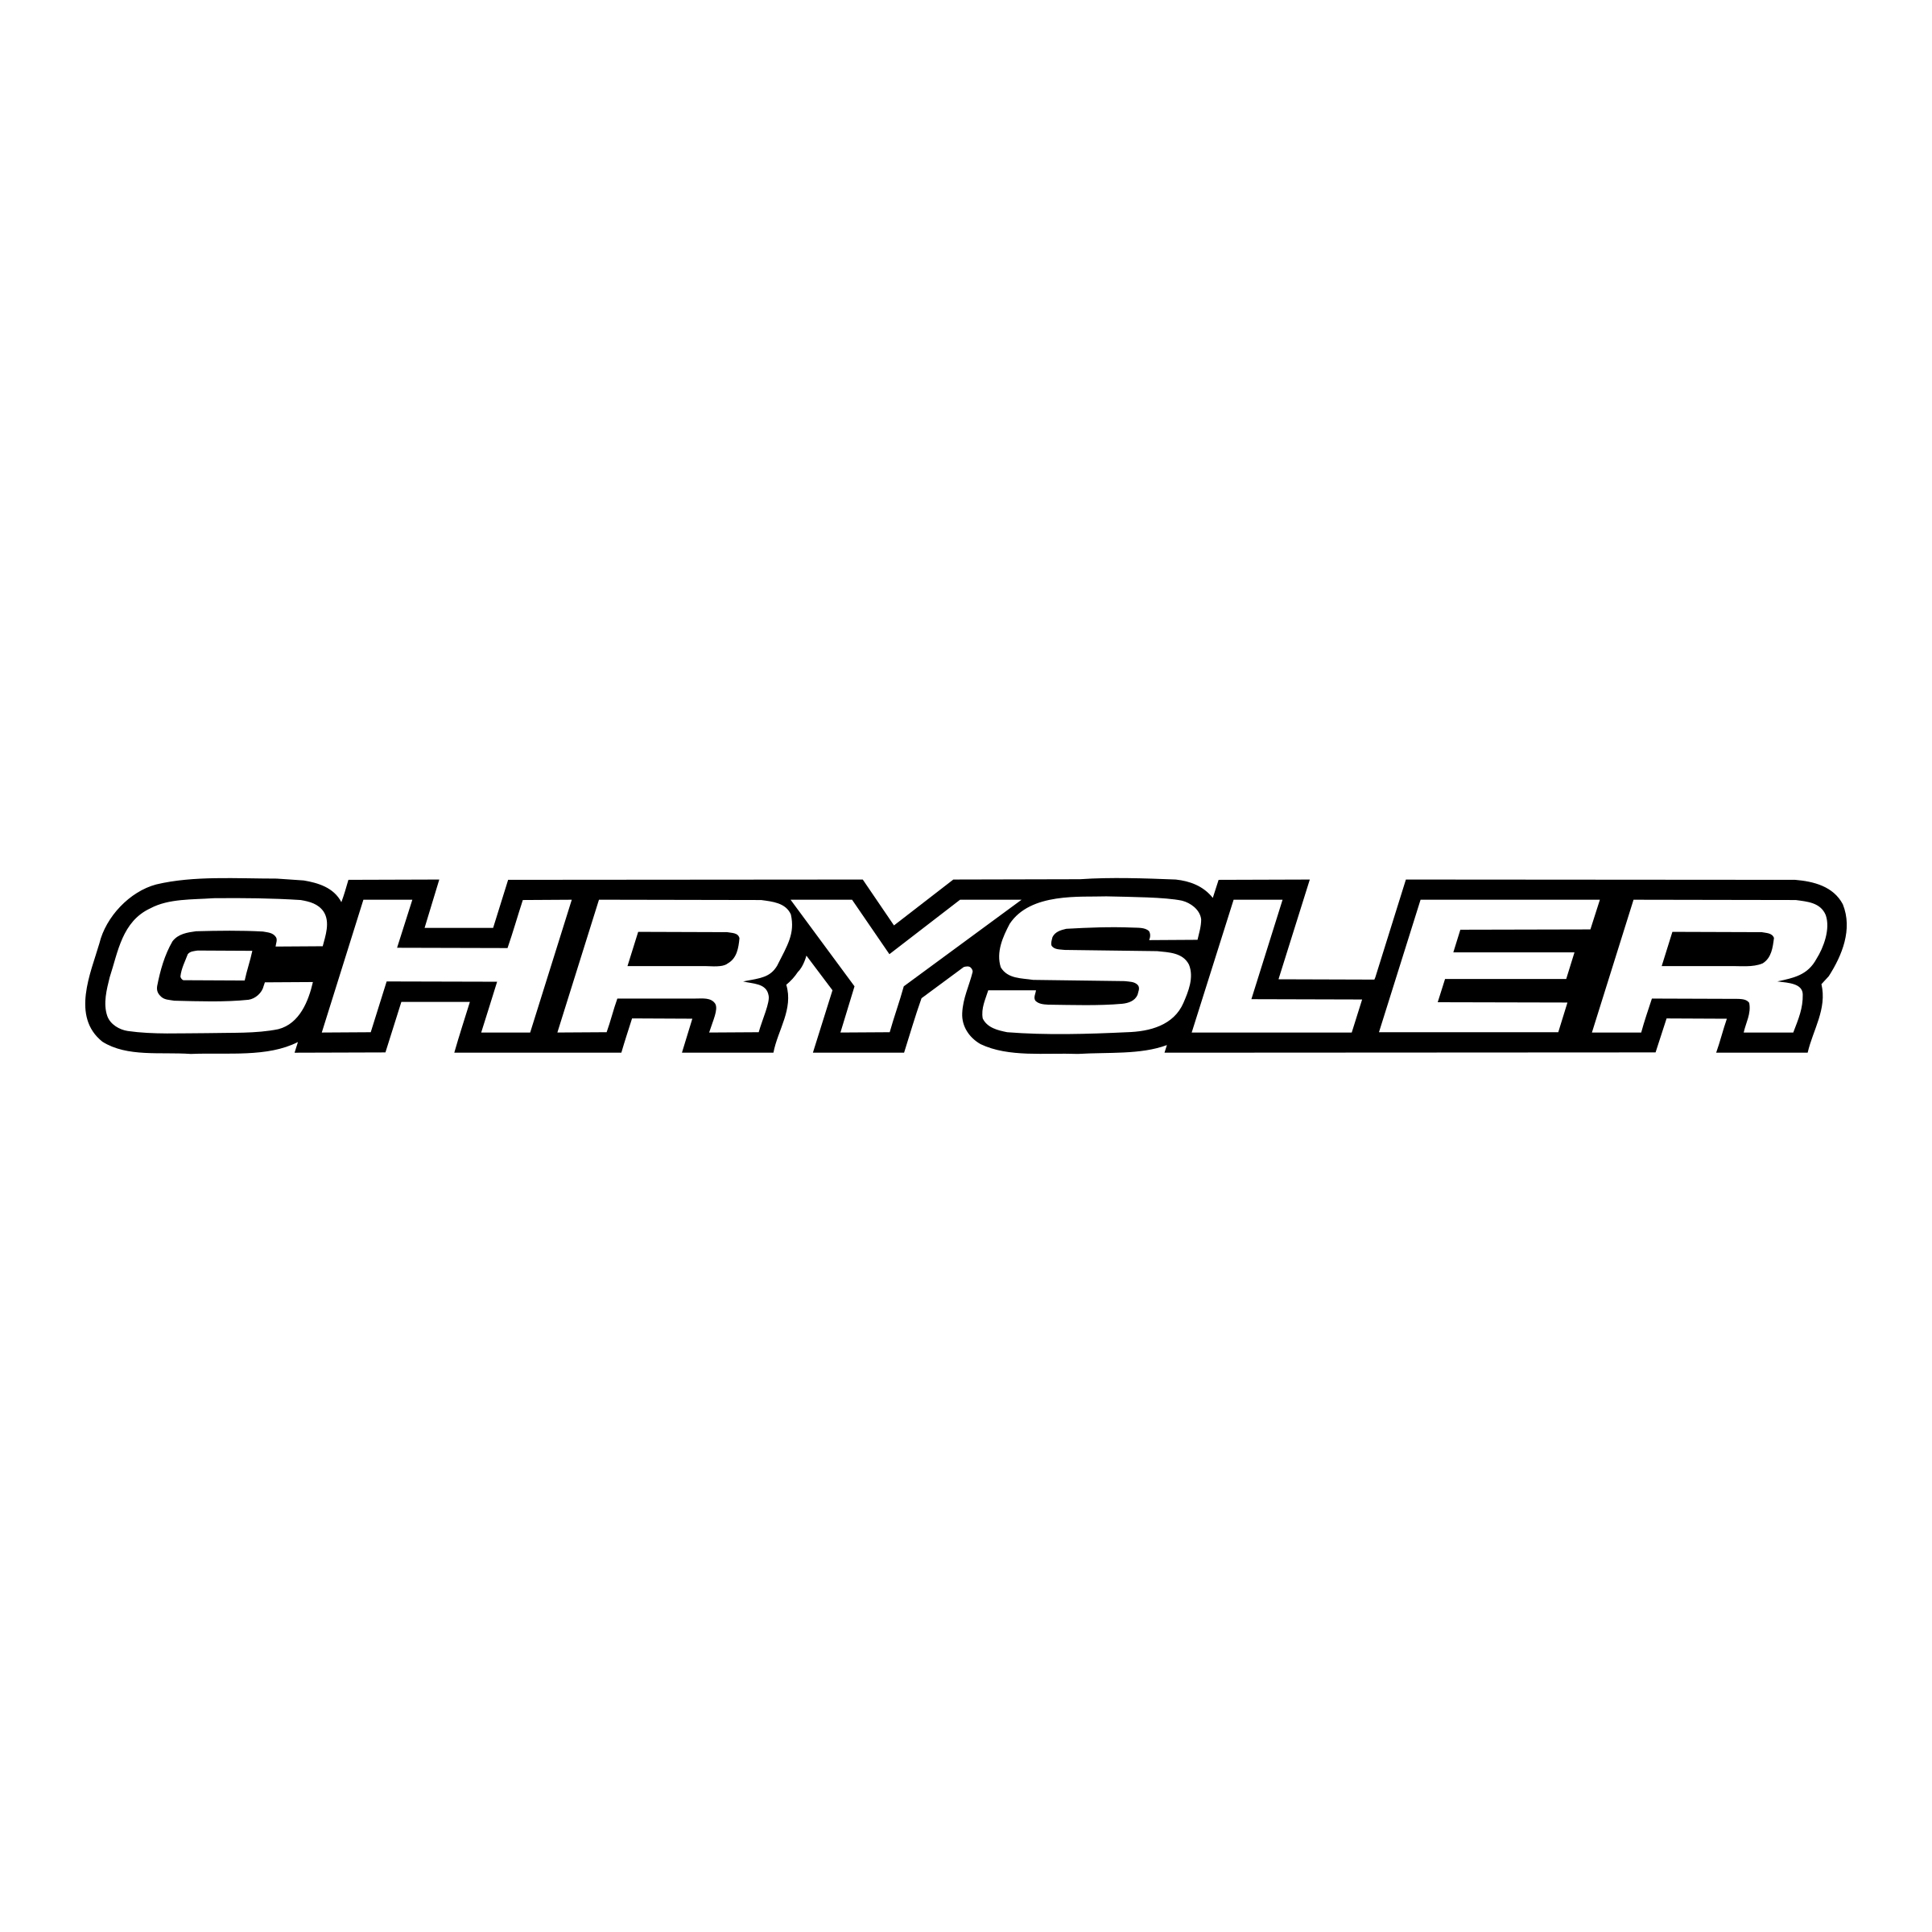 svg chrysler limited